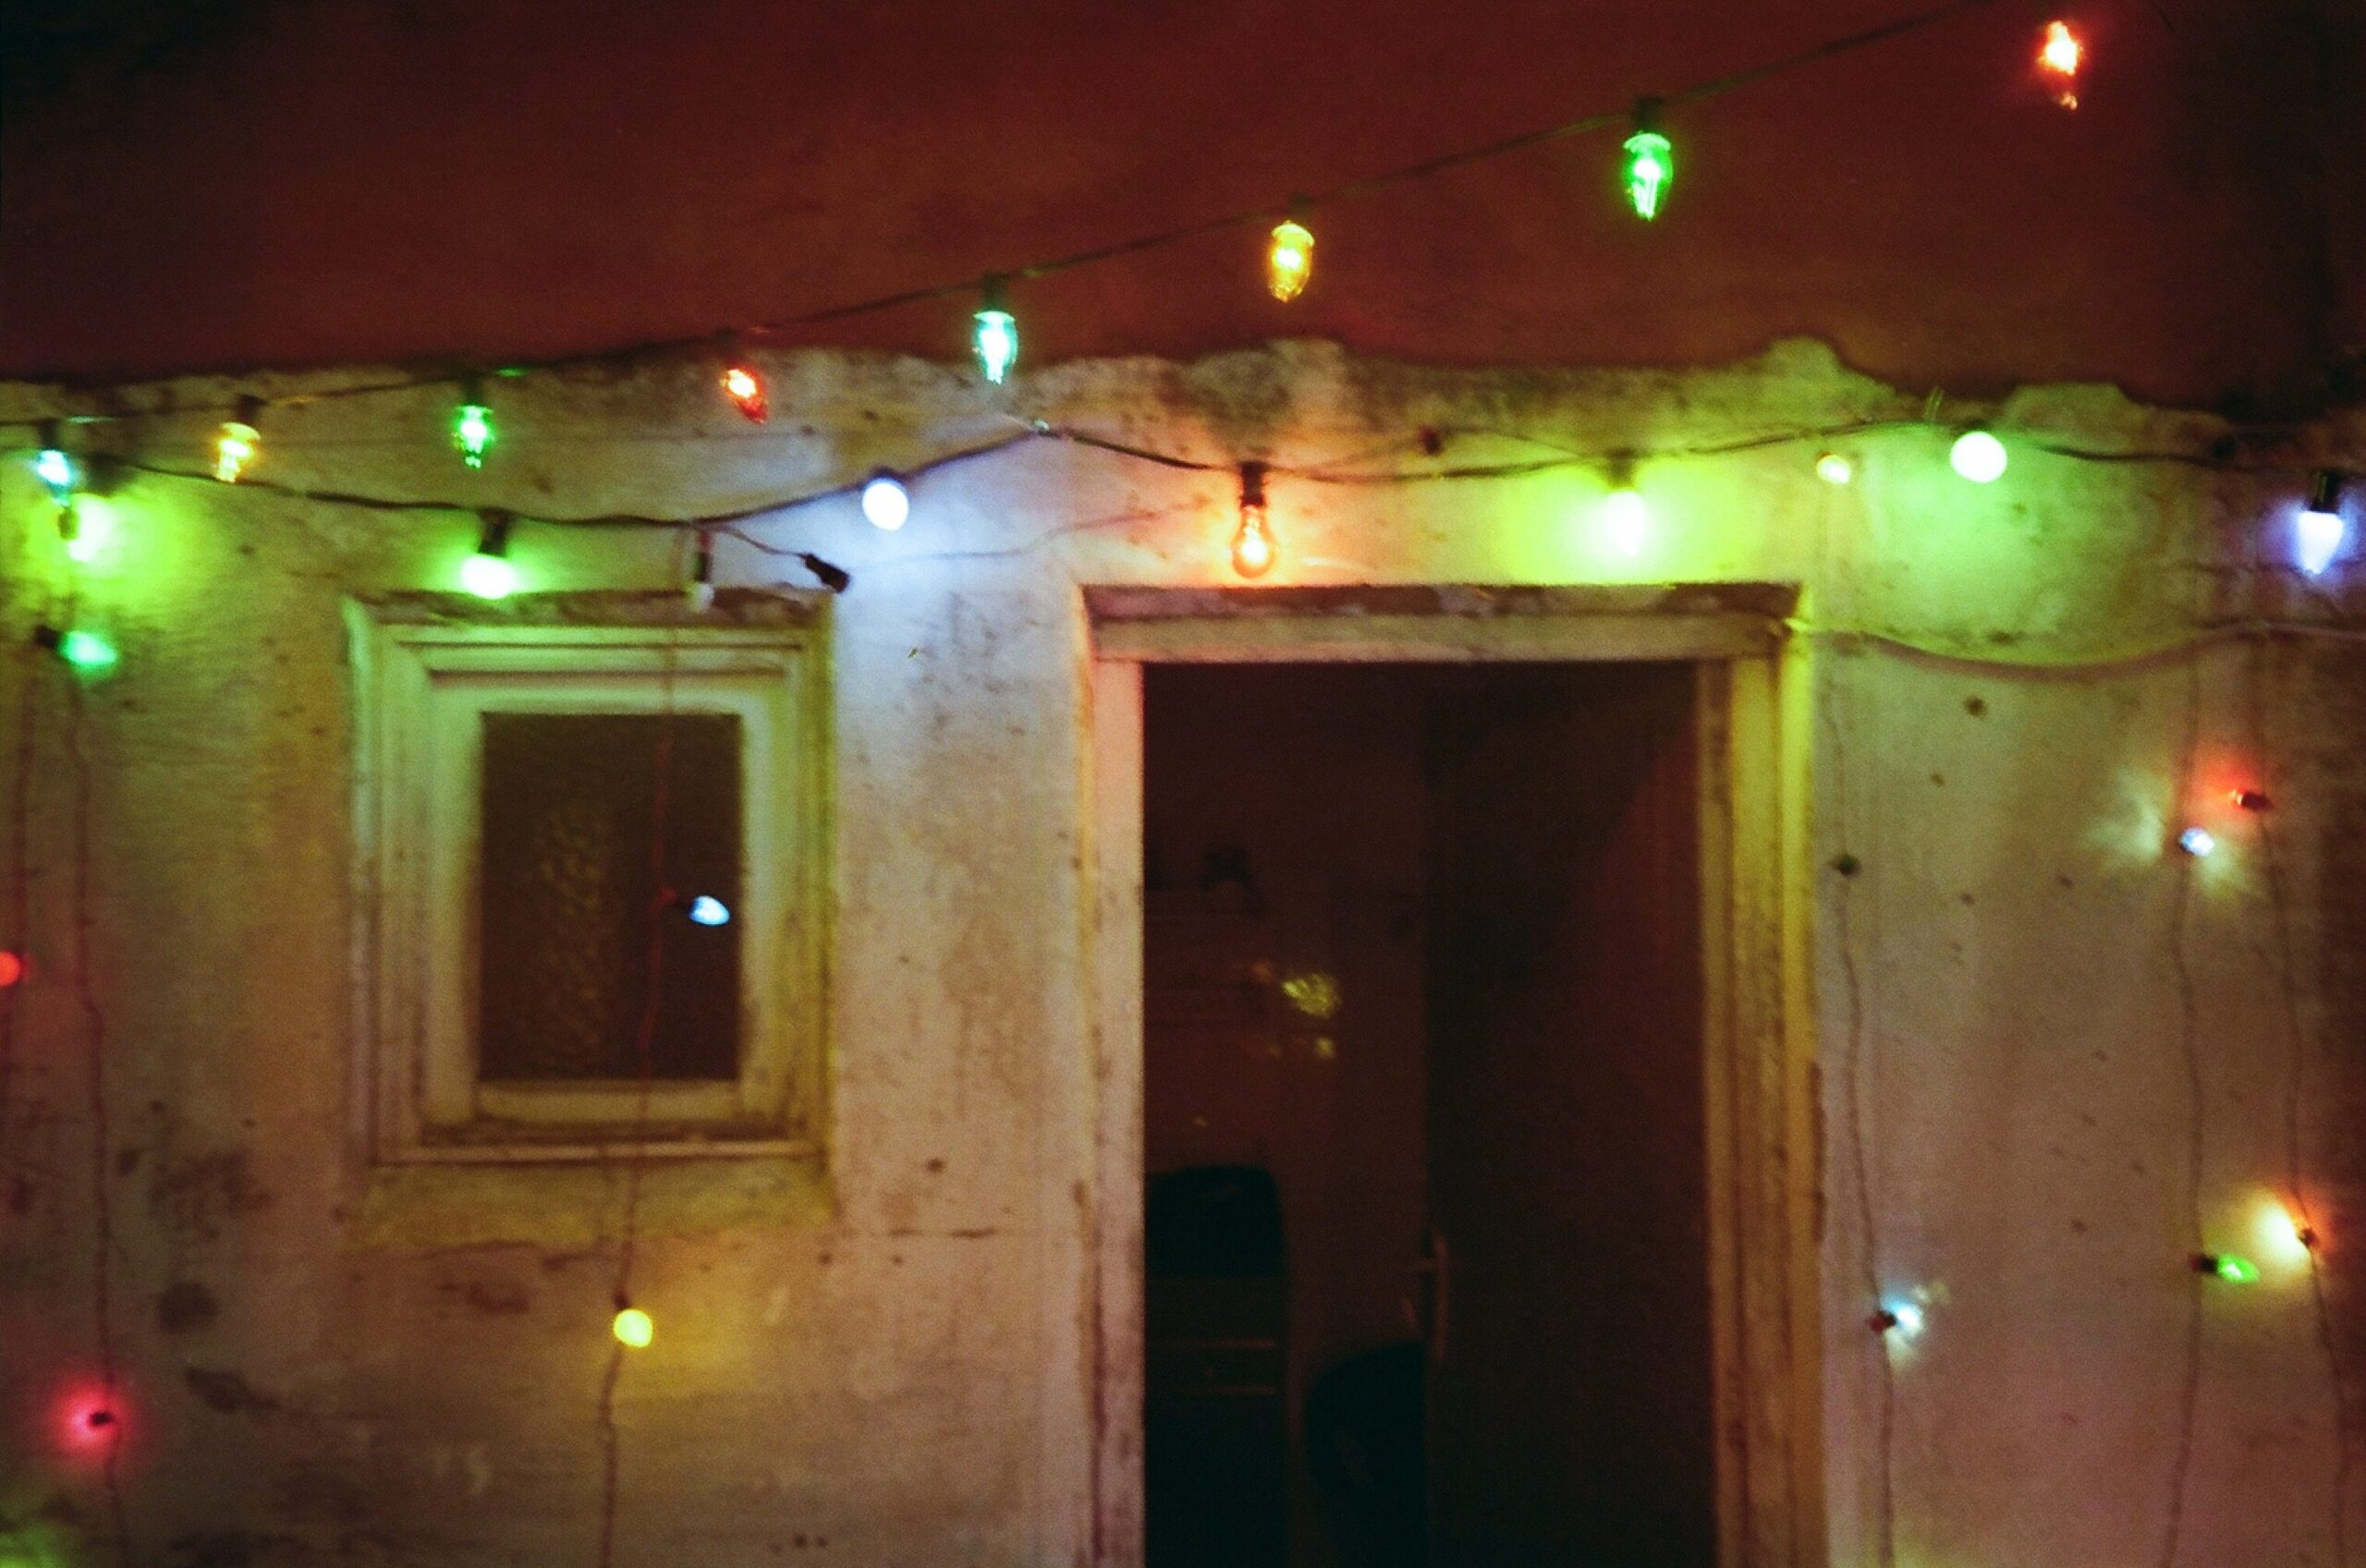 A series of coloured lights adorn the old entrance to an outdoor bathroom.